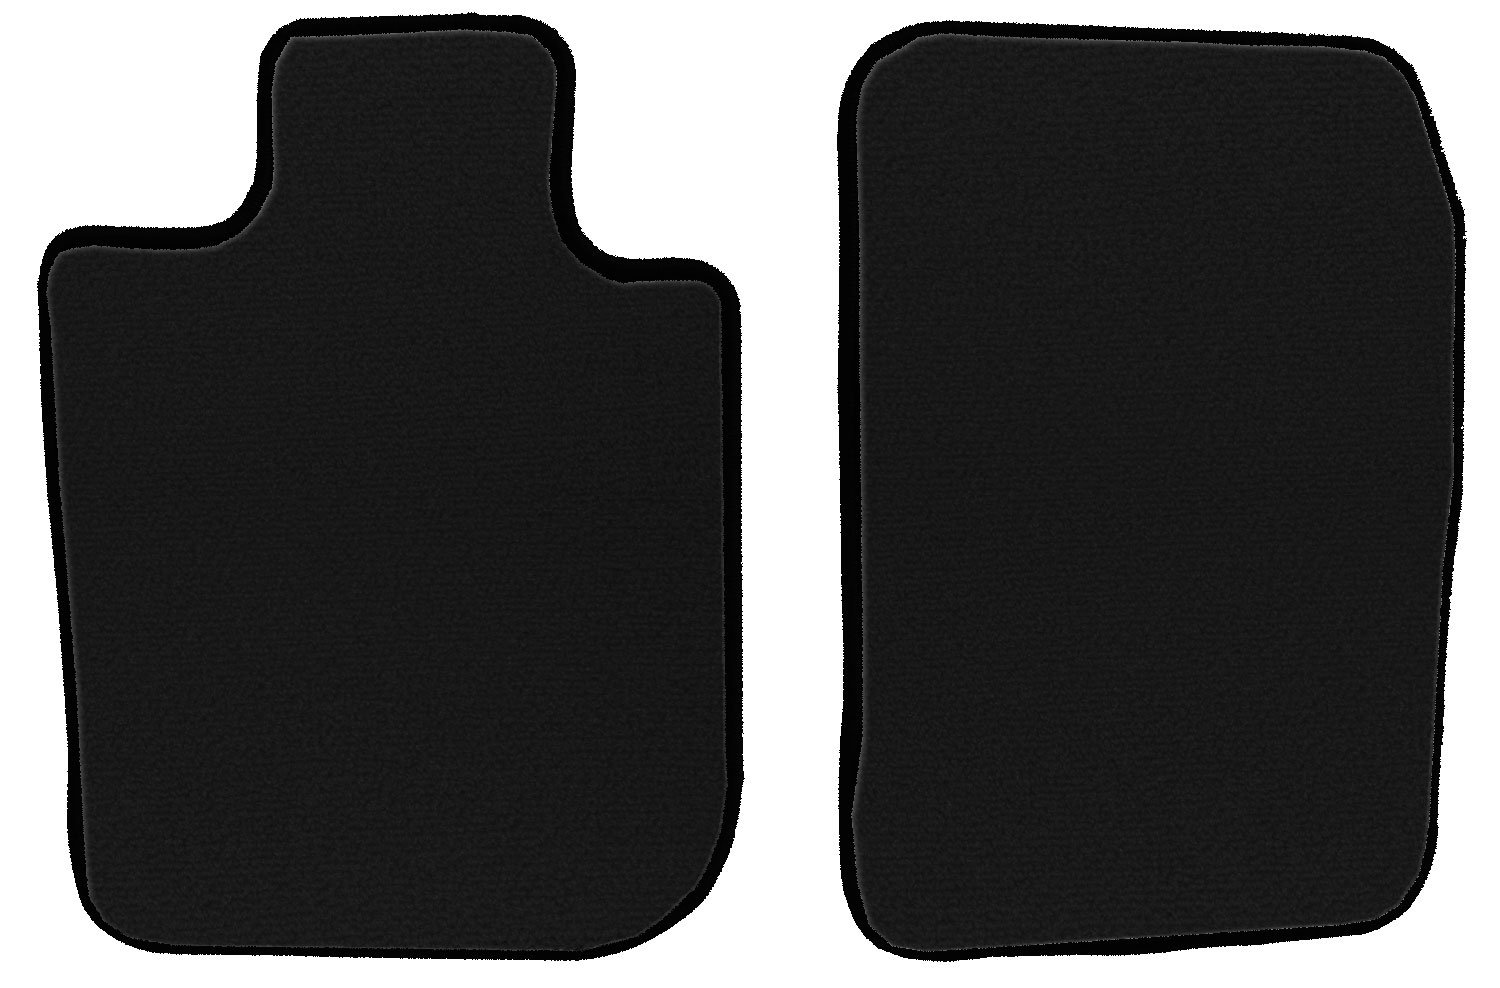 GGBAILEY D50438-F2A-BK-LP Custom Fit Car Mats for 2013 2014 2015 Lexus ES Black Loop Driver /& Passenger Floor